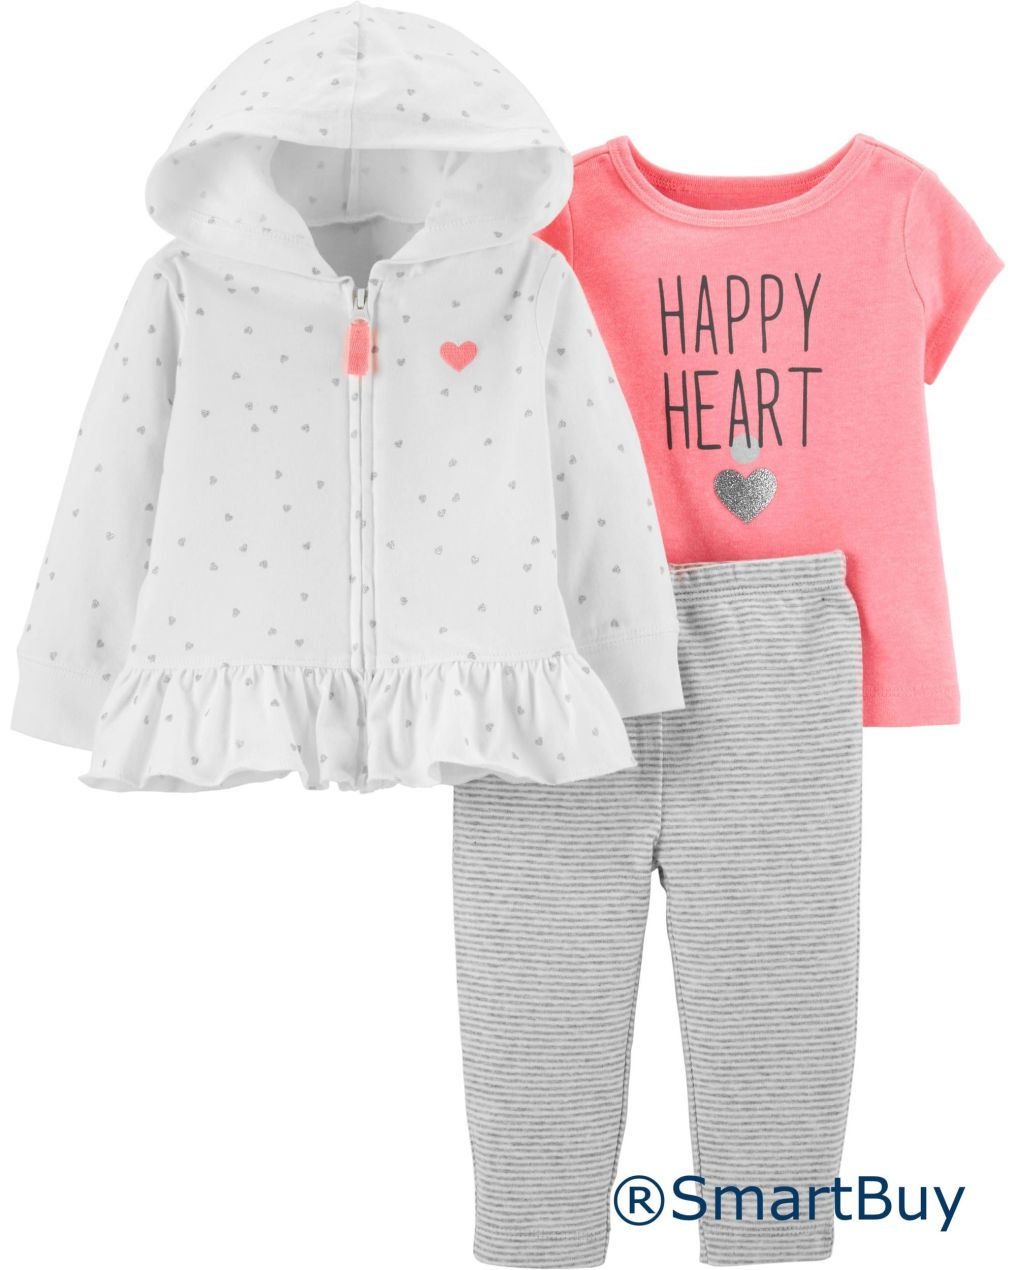 3-Piece Heart Cardigan Set